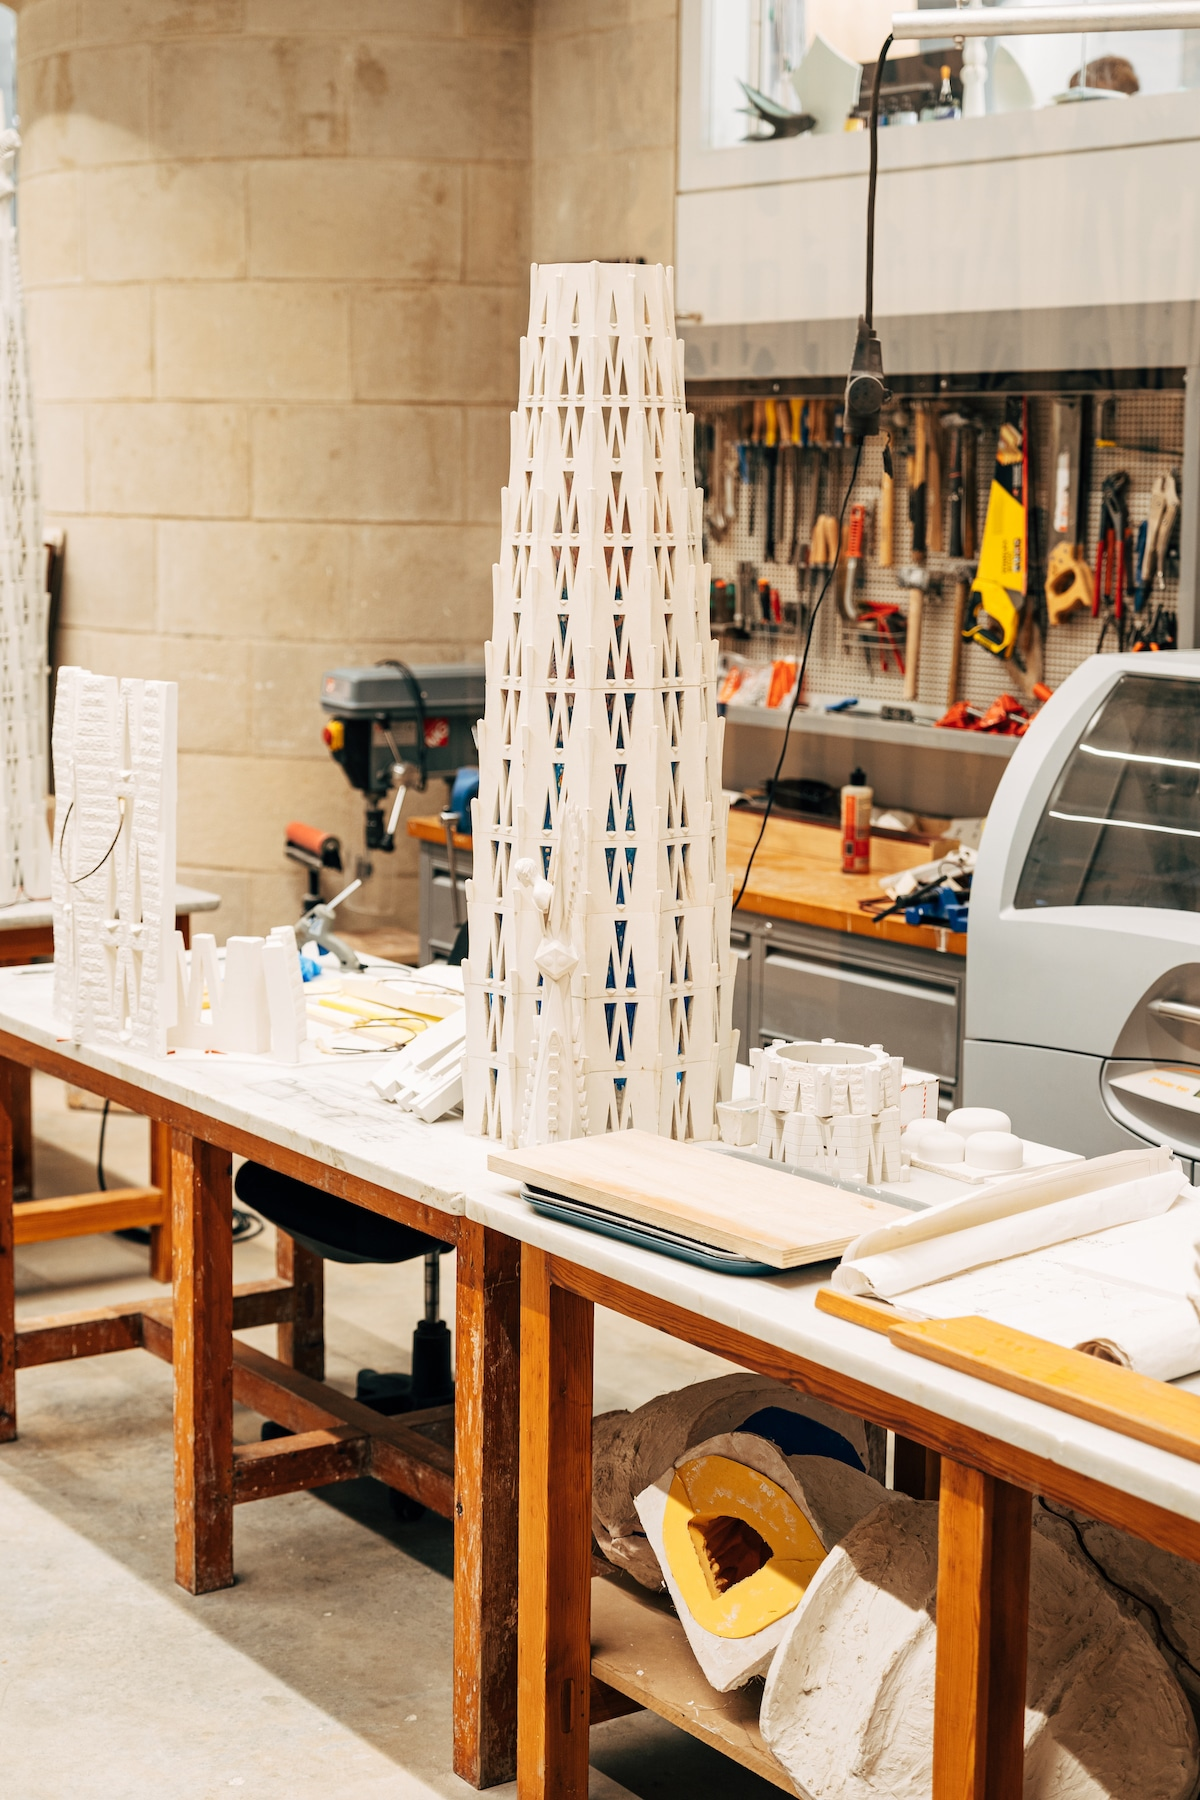 Model in Studio in La Sagrada Familia